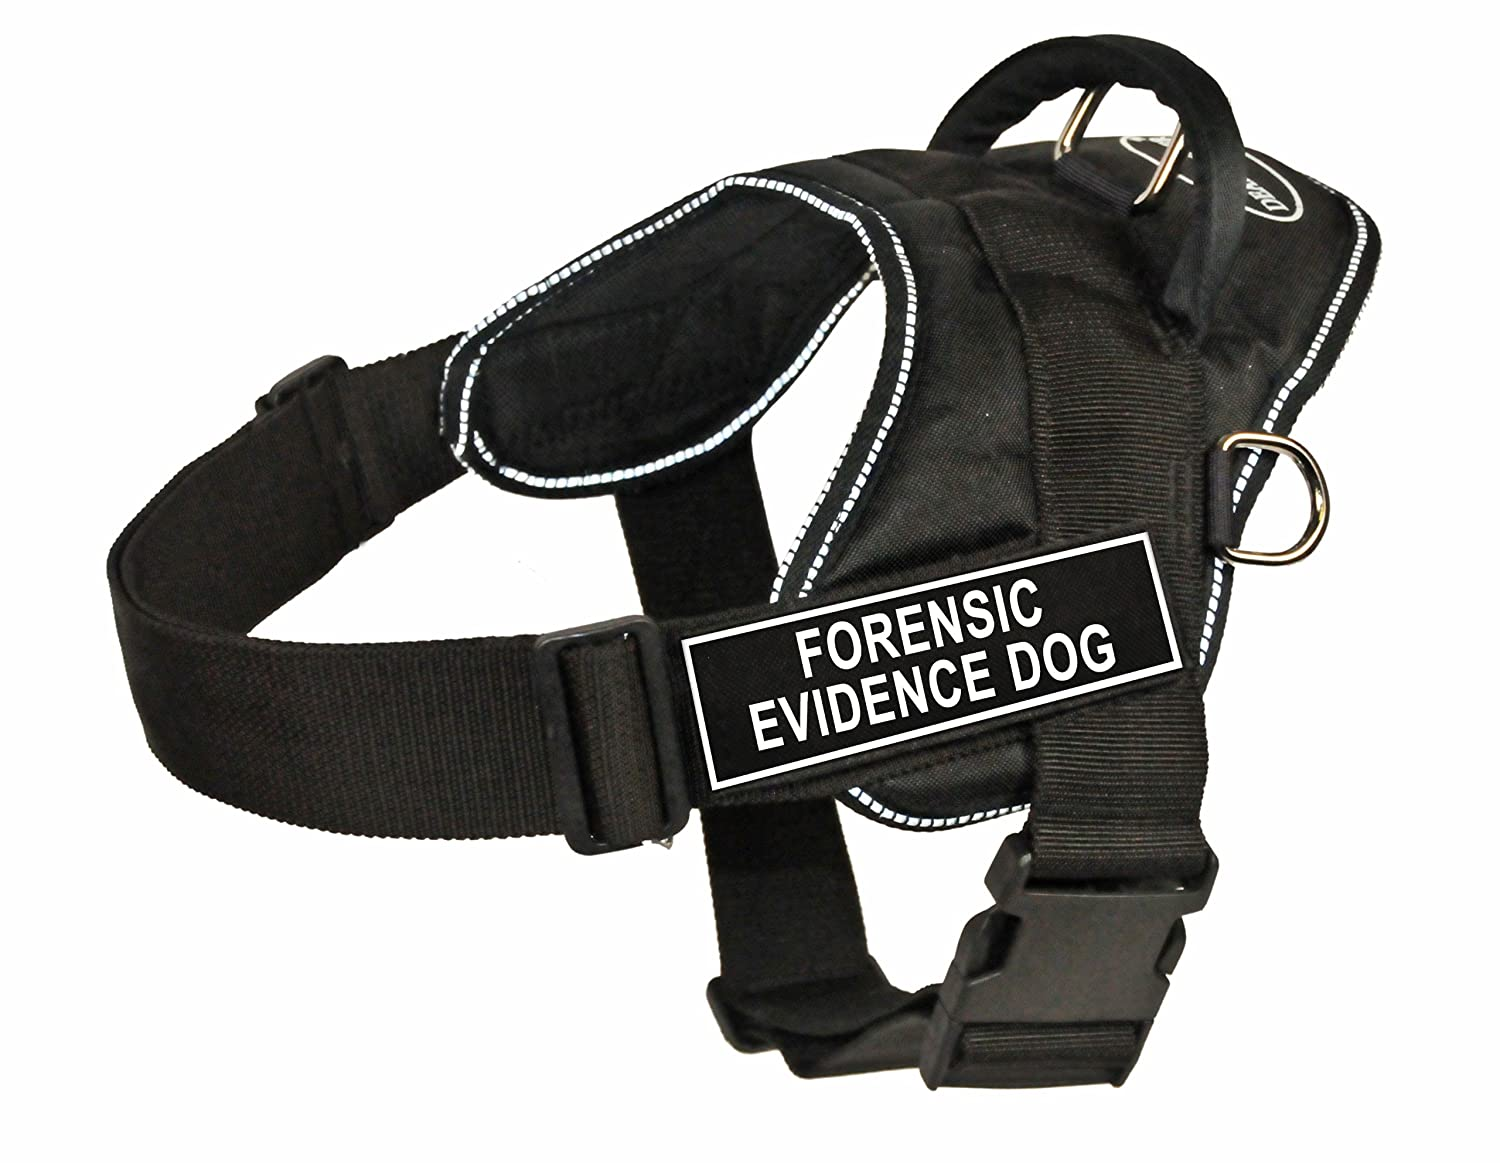 Dean & Tyler Fun Works 20-Inch to 23-Inch Pet Harness, X-Small, Forensic Evidence Dog, Black with Reflective Trim